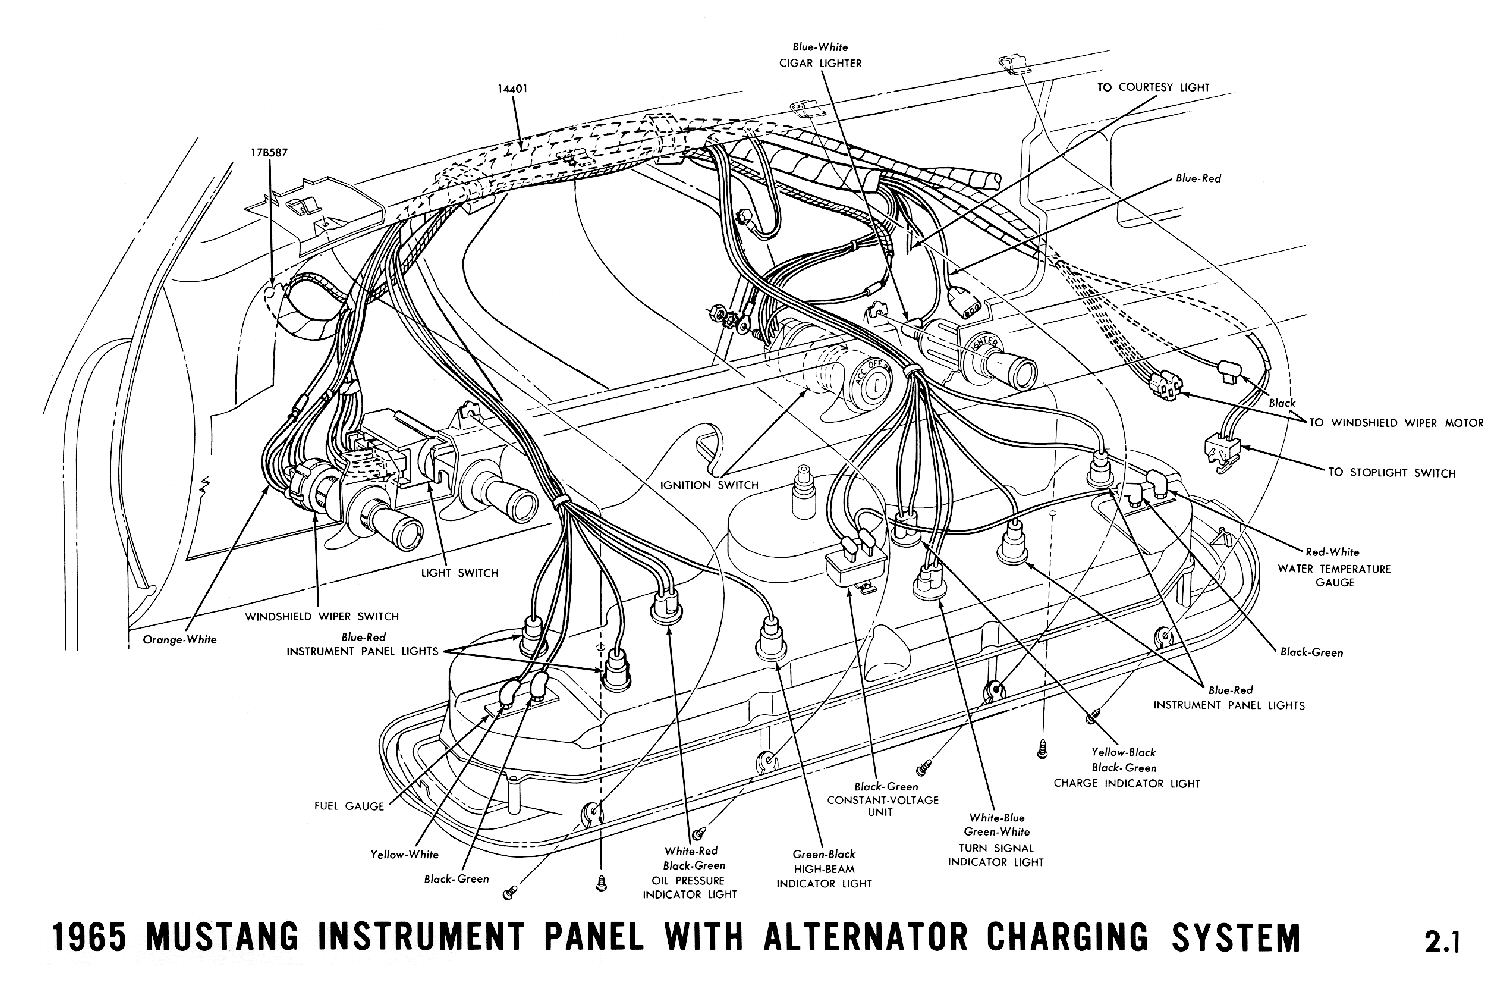 1965a 1965 mustang wiring diagrams average joe restoration 1969 mustang alternator wiring diagram at gsmportal.co